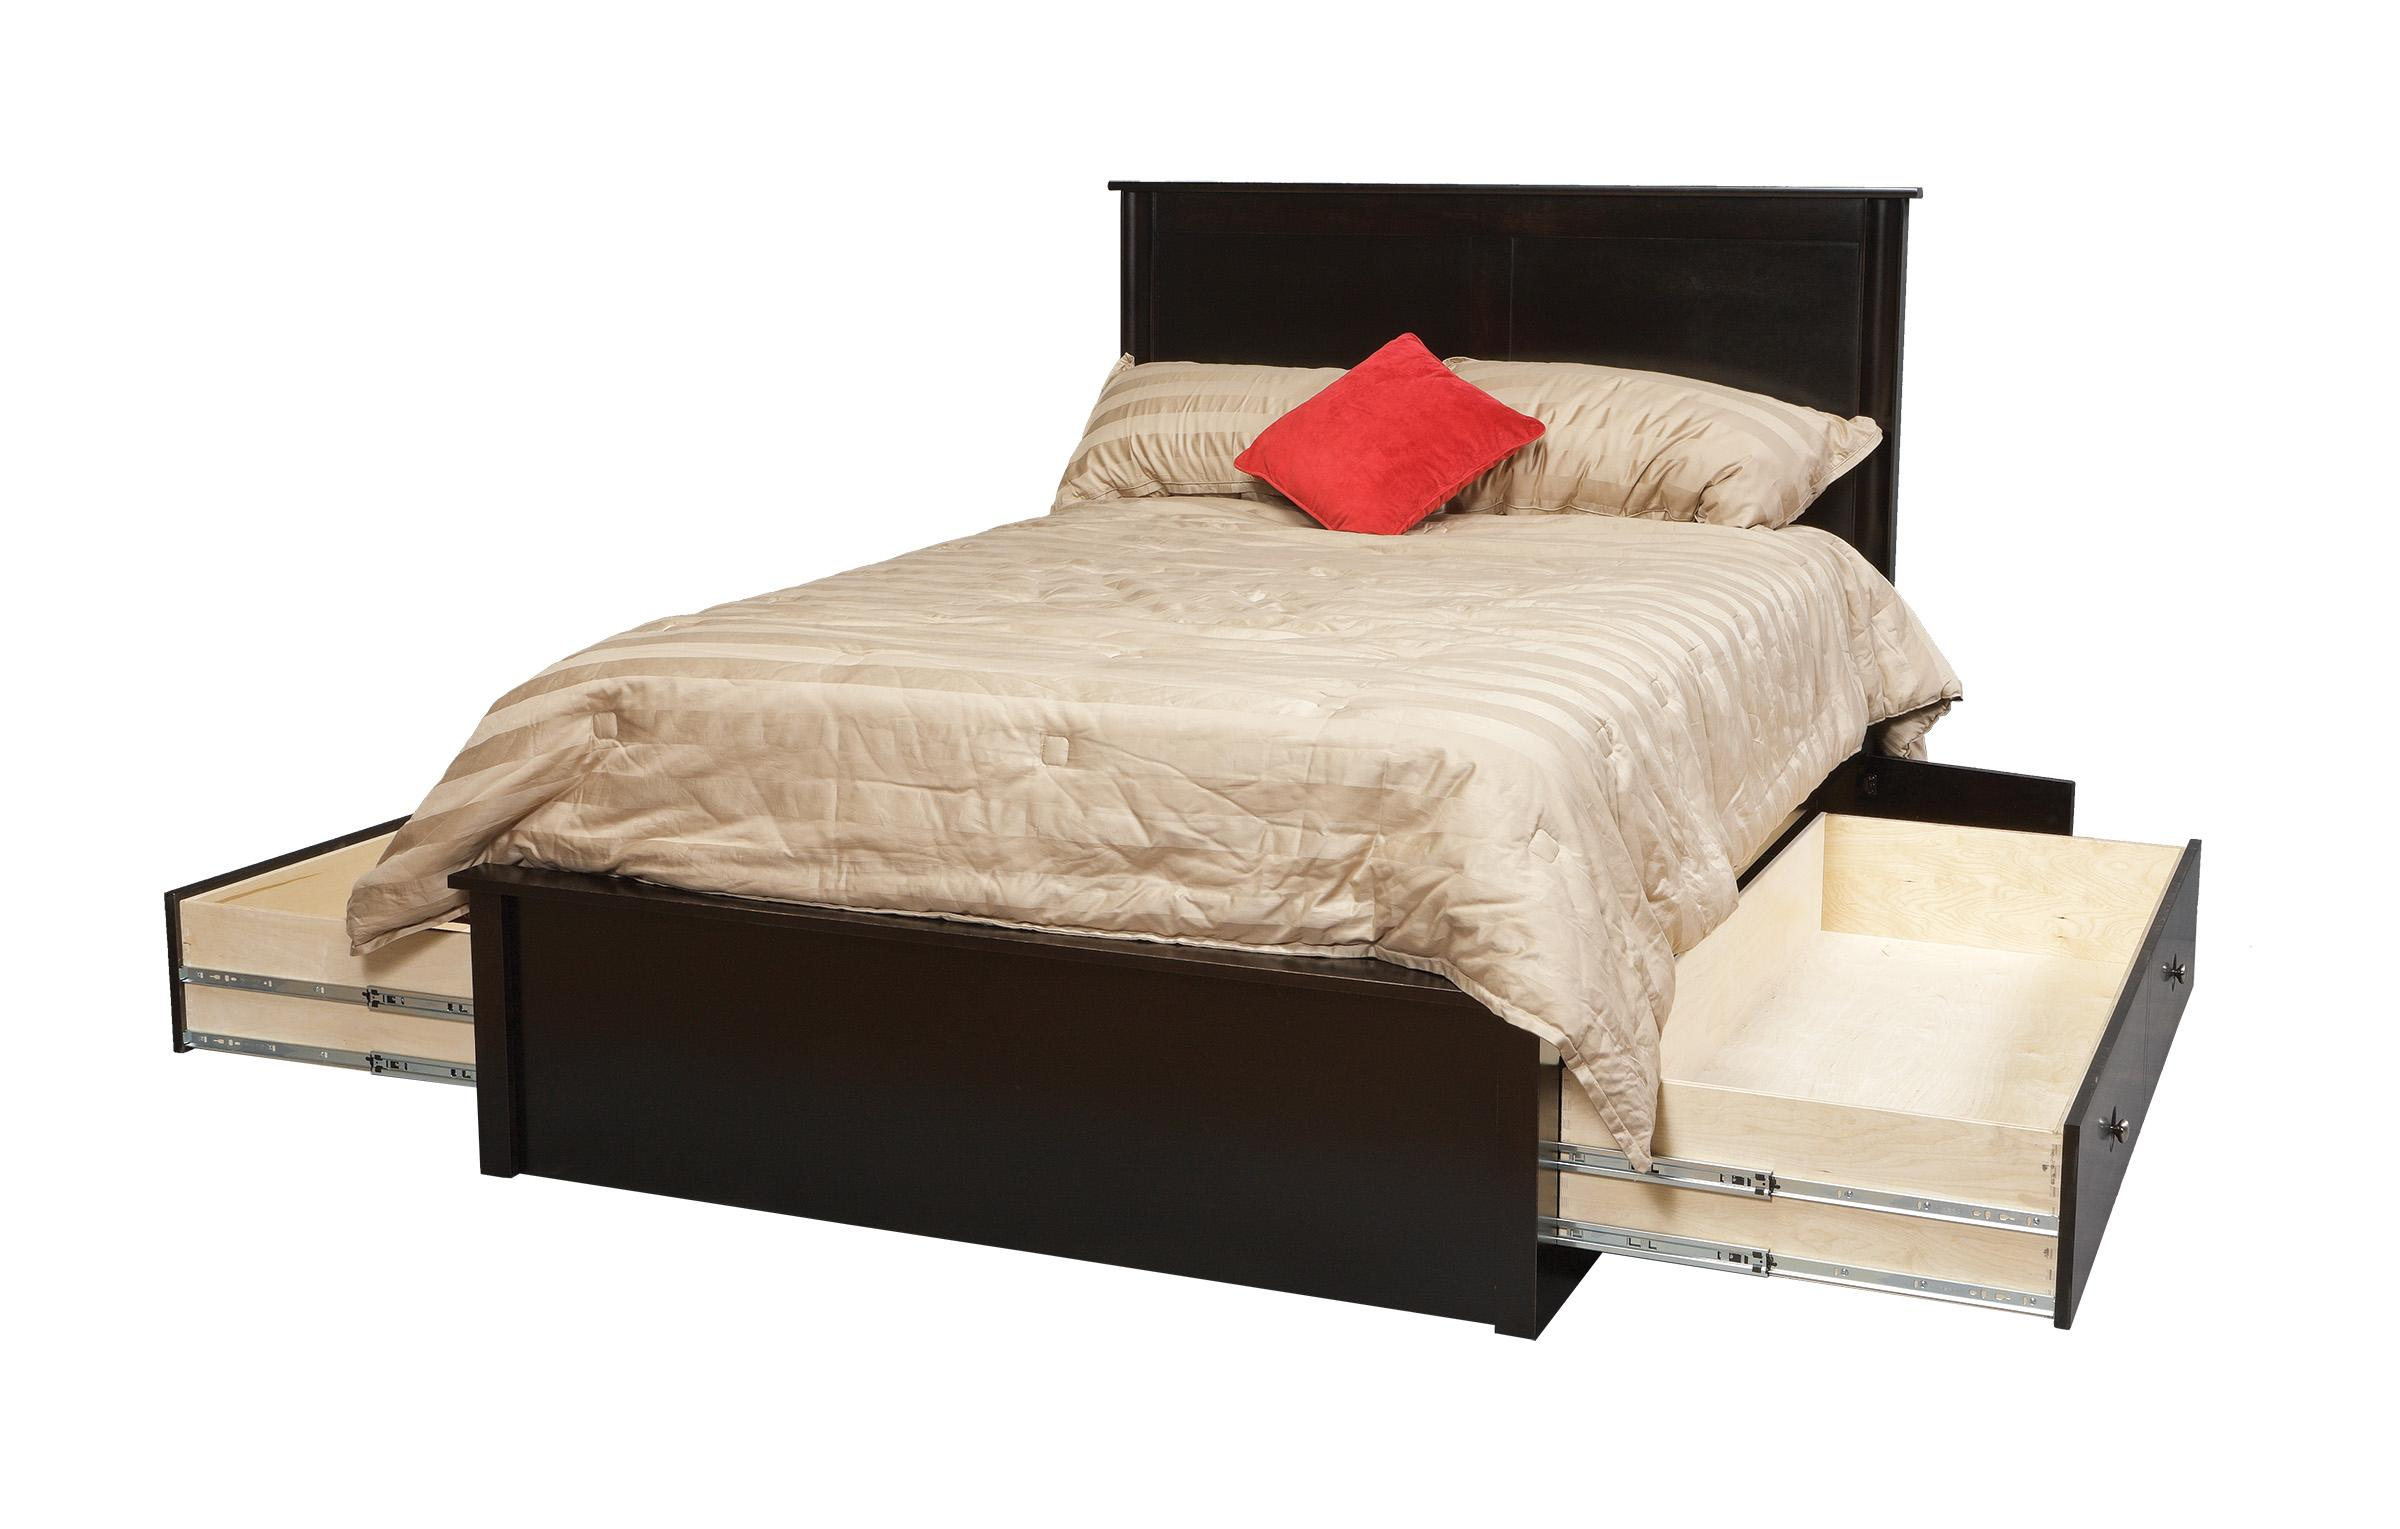 Queen Pedestal Bed W  Storage Drawers On Each Side